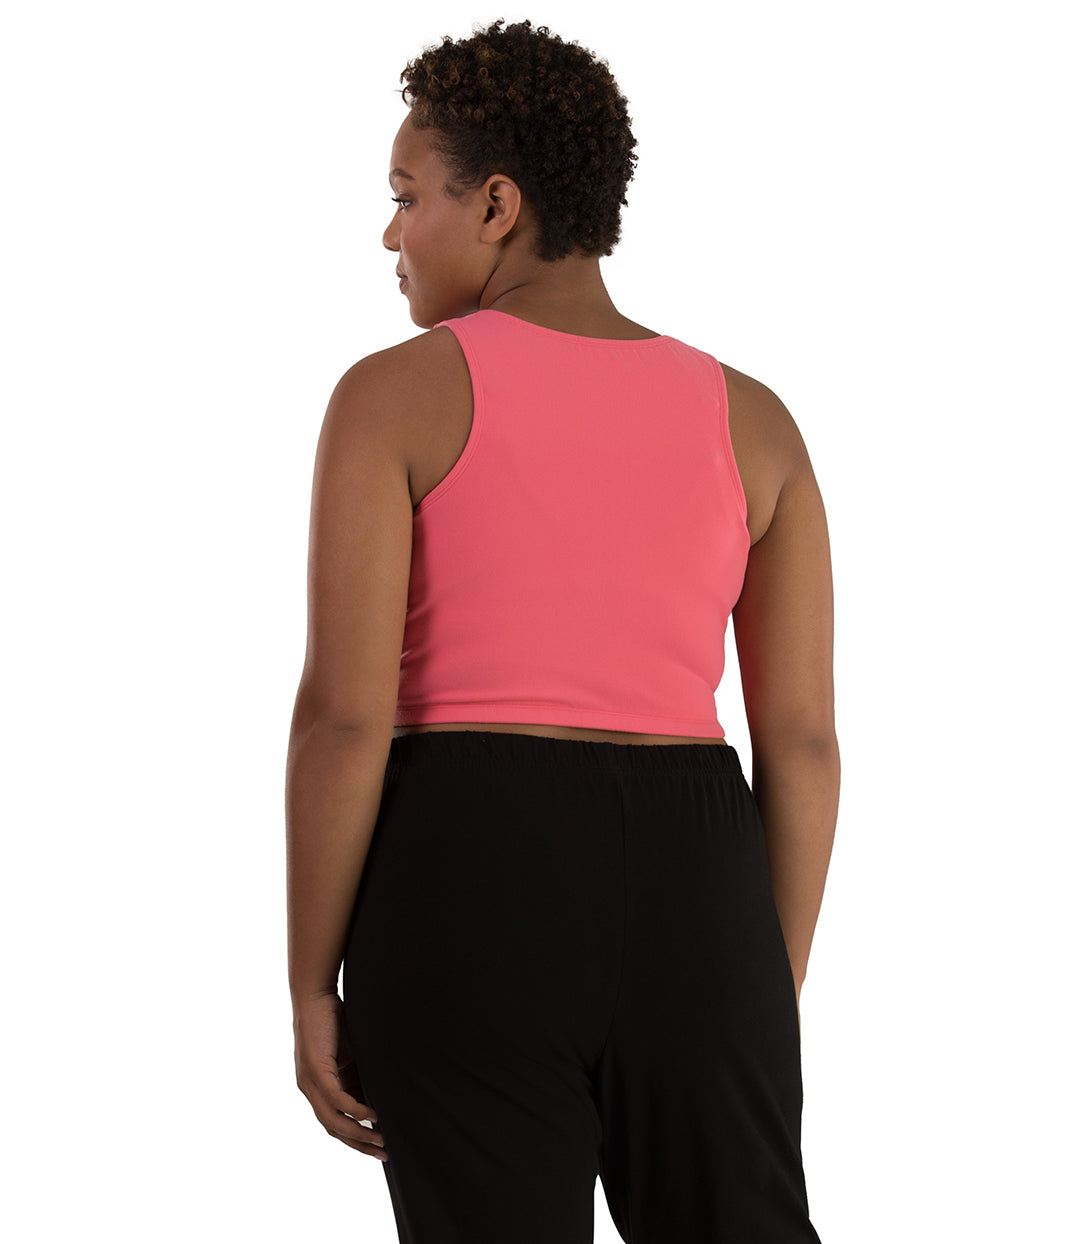 Supplex Long-Line V-Neck Bra Top-Shop by Activity-Osheka, Inc-XL-Orchid Pink-JunoActive